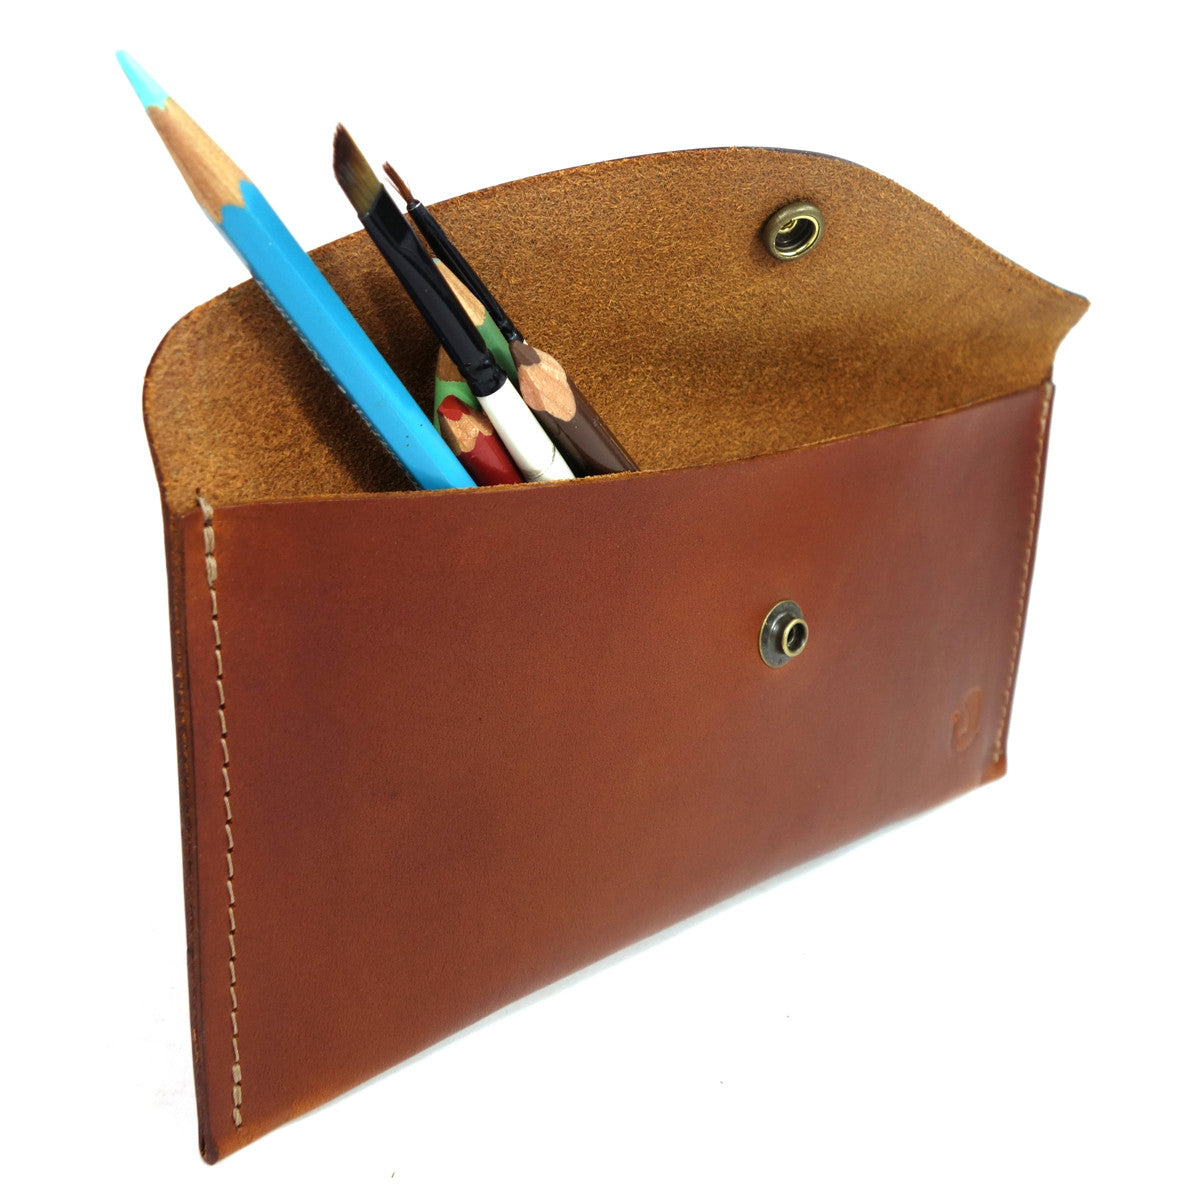 Field day case. This leather case will help you keep your belongings safe and organized. Carry pencils, small tools or anything else you will need on a day out on the town, going to class or just organizing the many things in your bag.  4/5oz Herman Oak Vegetable Tanned Leather, Antique Brass Snap. Pencil case. leather case.